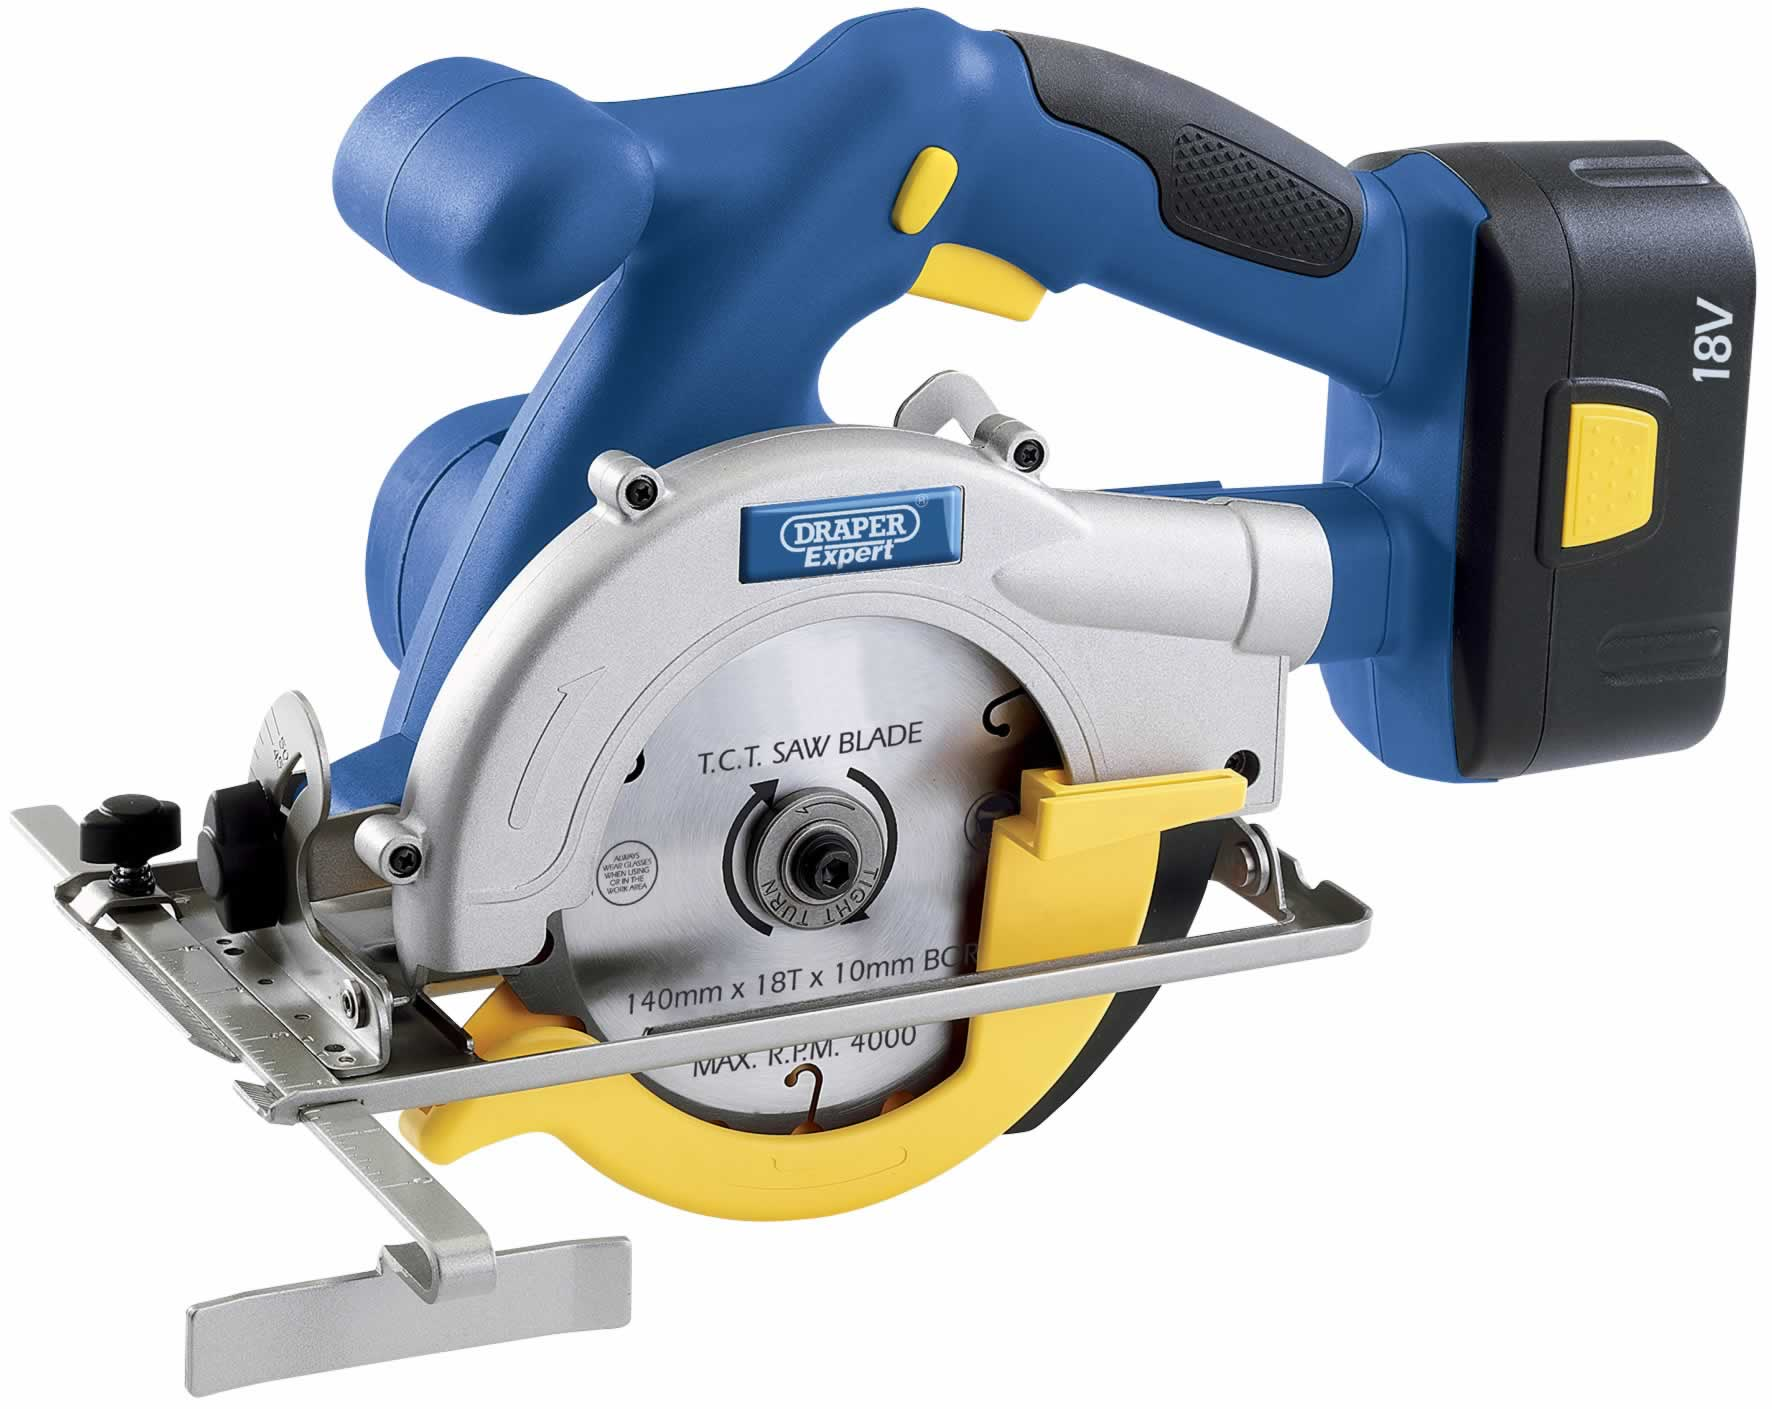 EXPERT 140MM 18V CORDLESS CIRCULAR SAW WITH CASE (AHA)